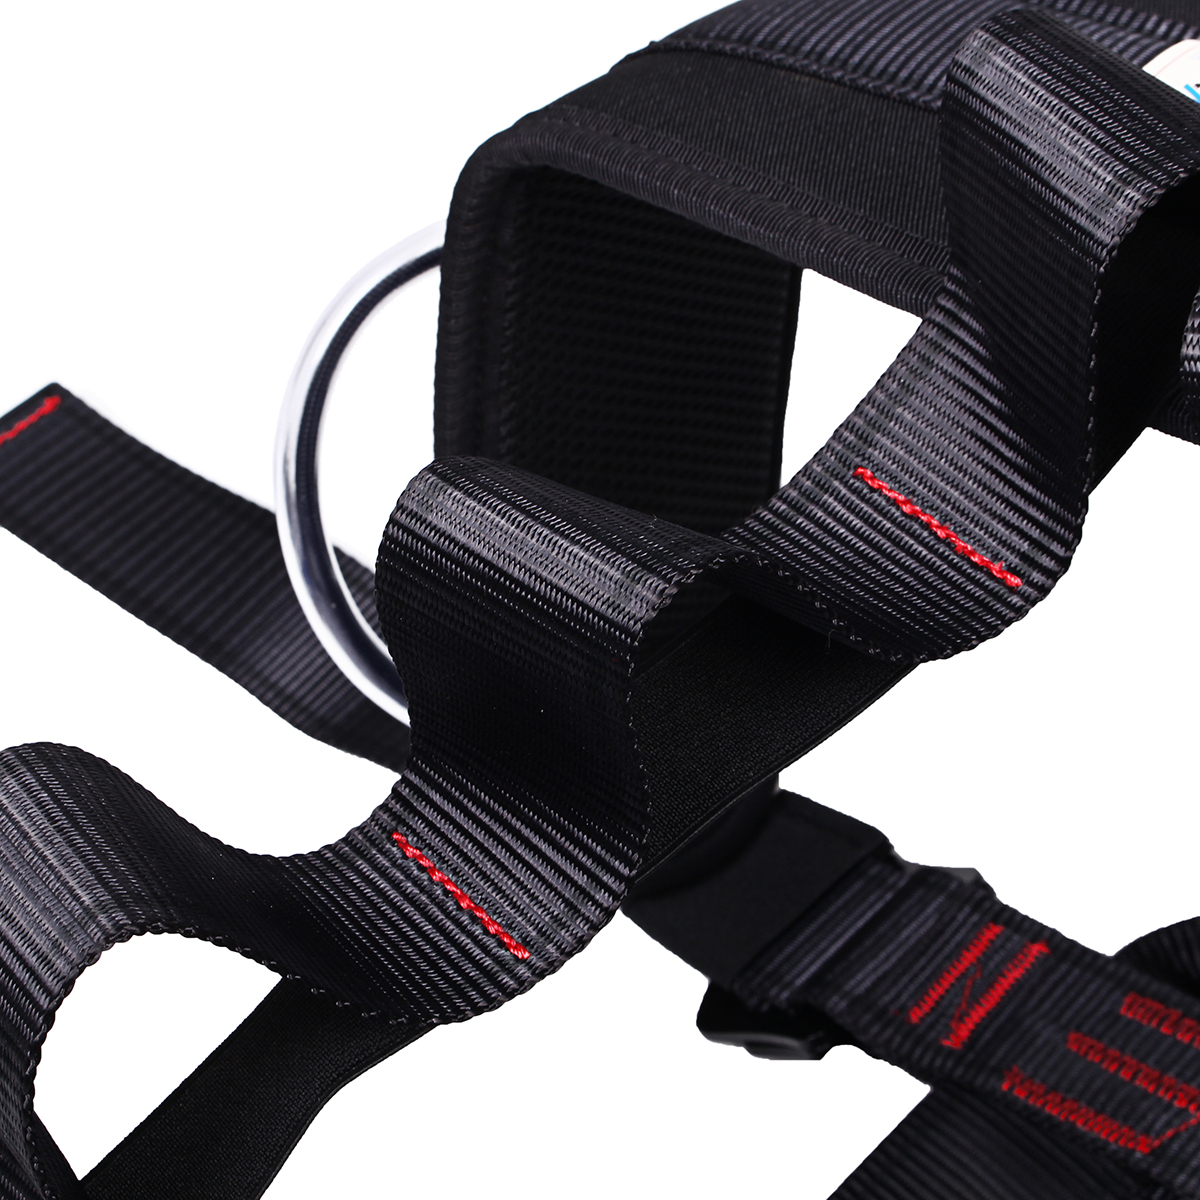 Outdoor Harness Seat Belts Rock Climbing Sitting Bust Belts Rappelling Rope Security Equipment